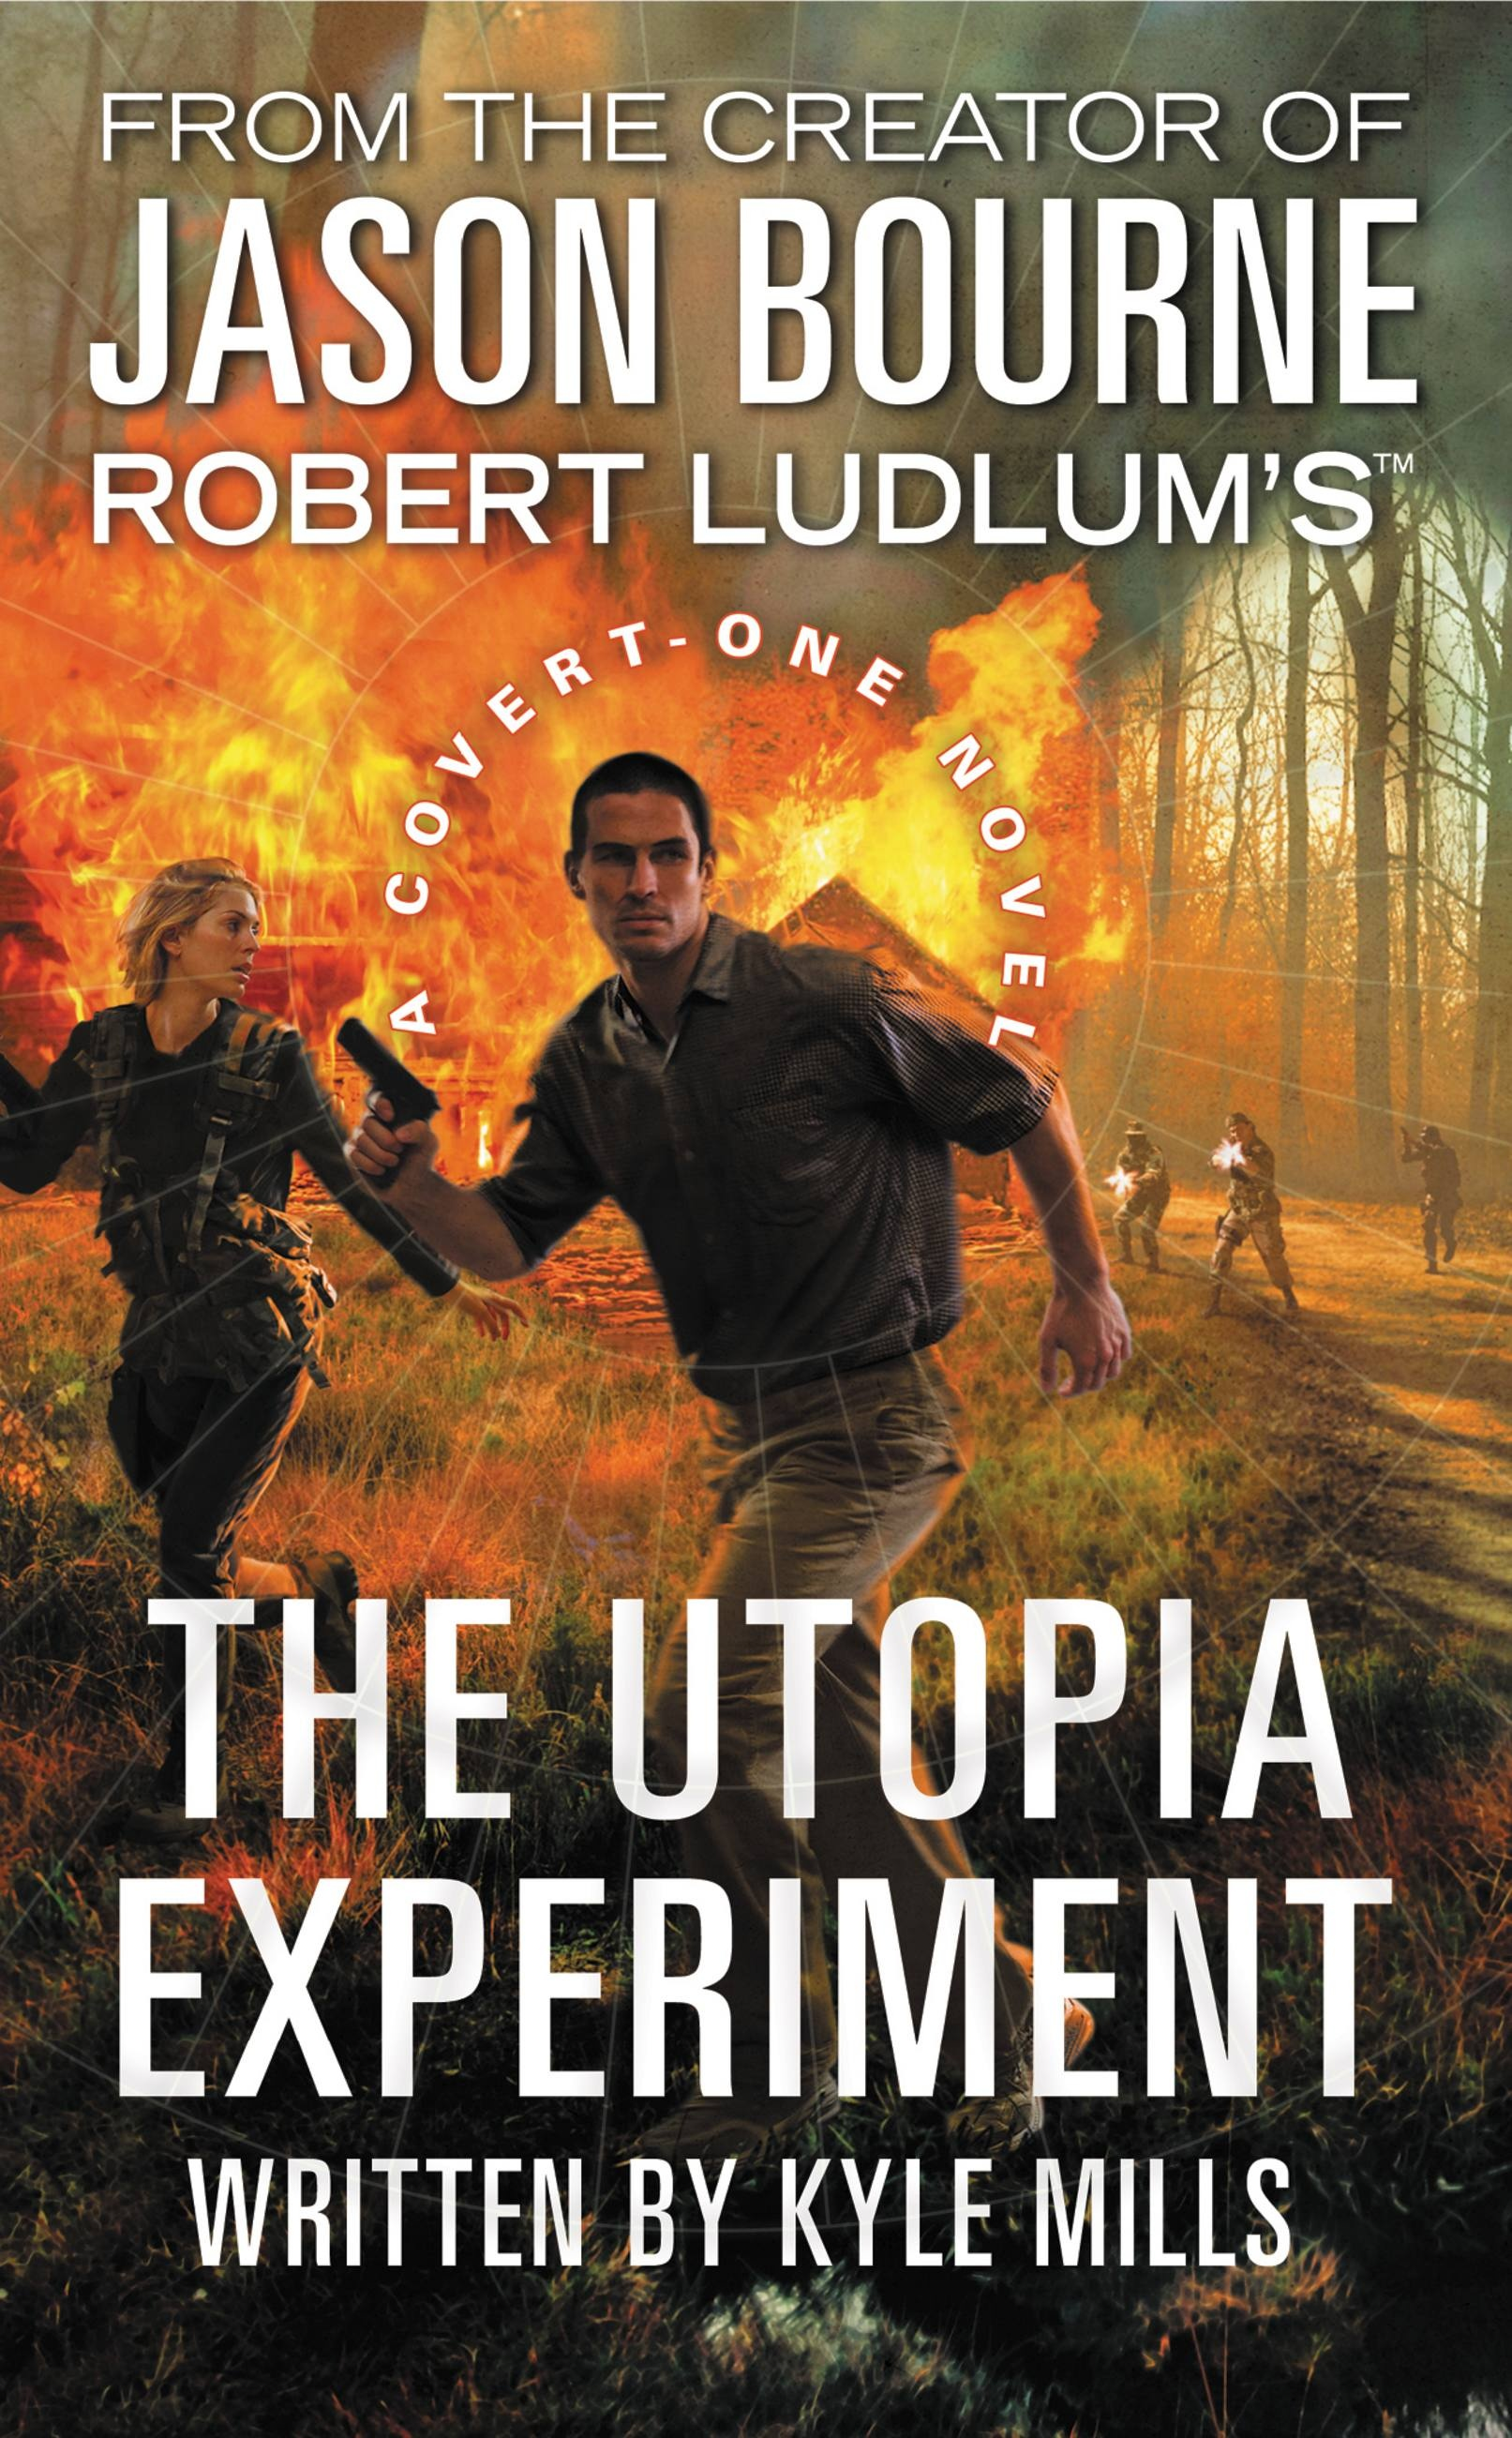 Robert Ludlum's (TM) The Utopia Experiment